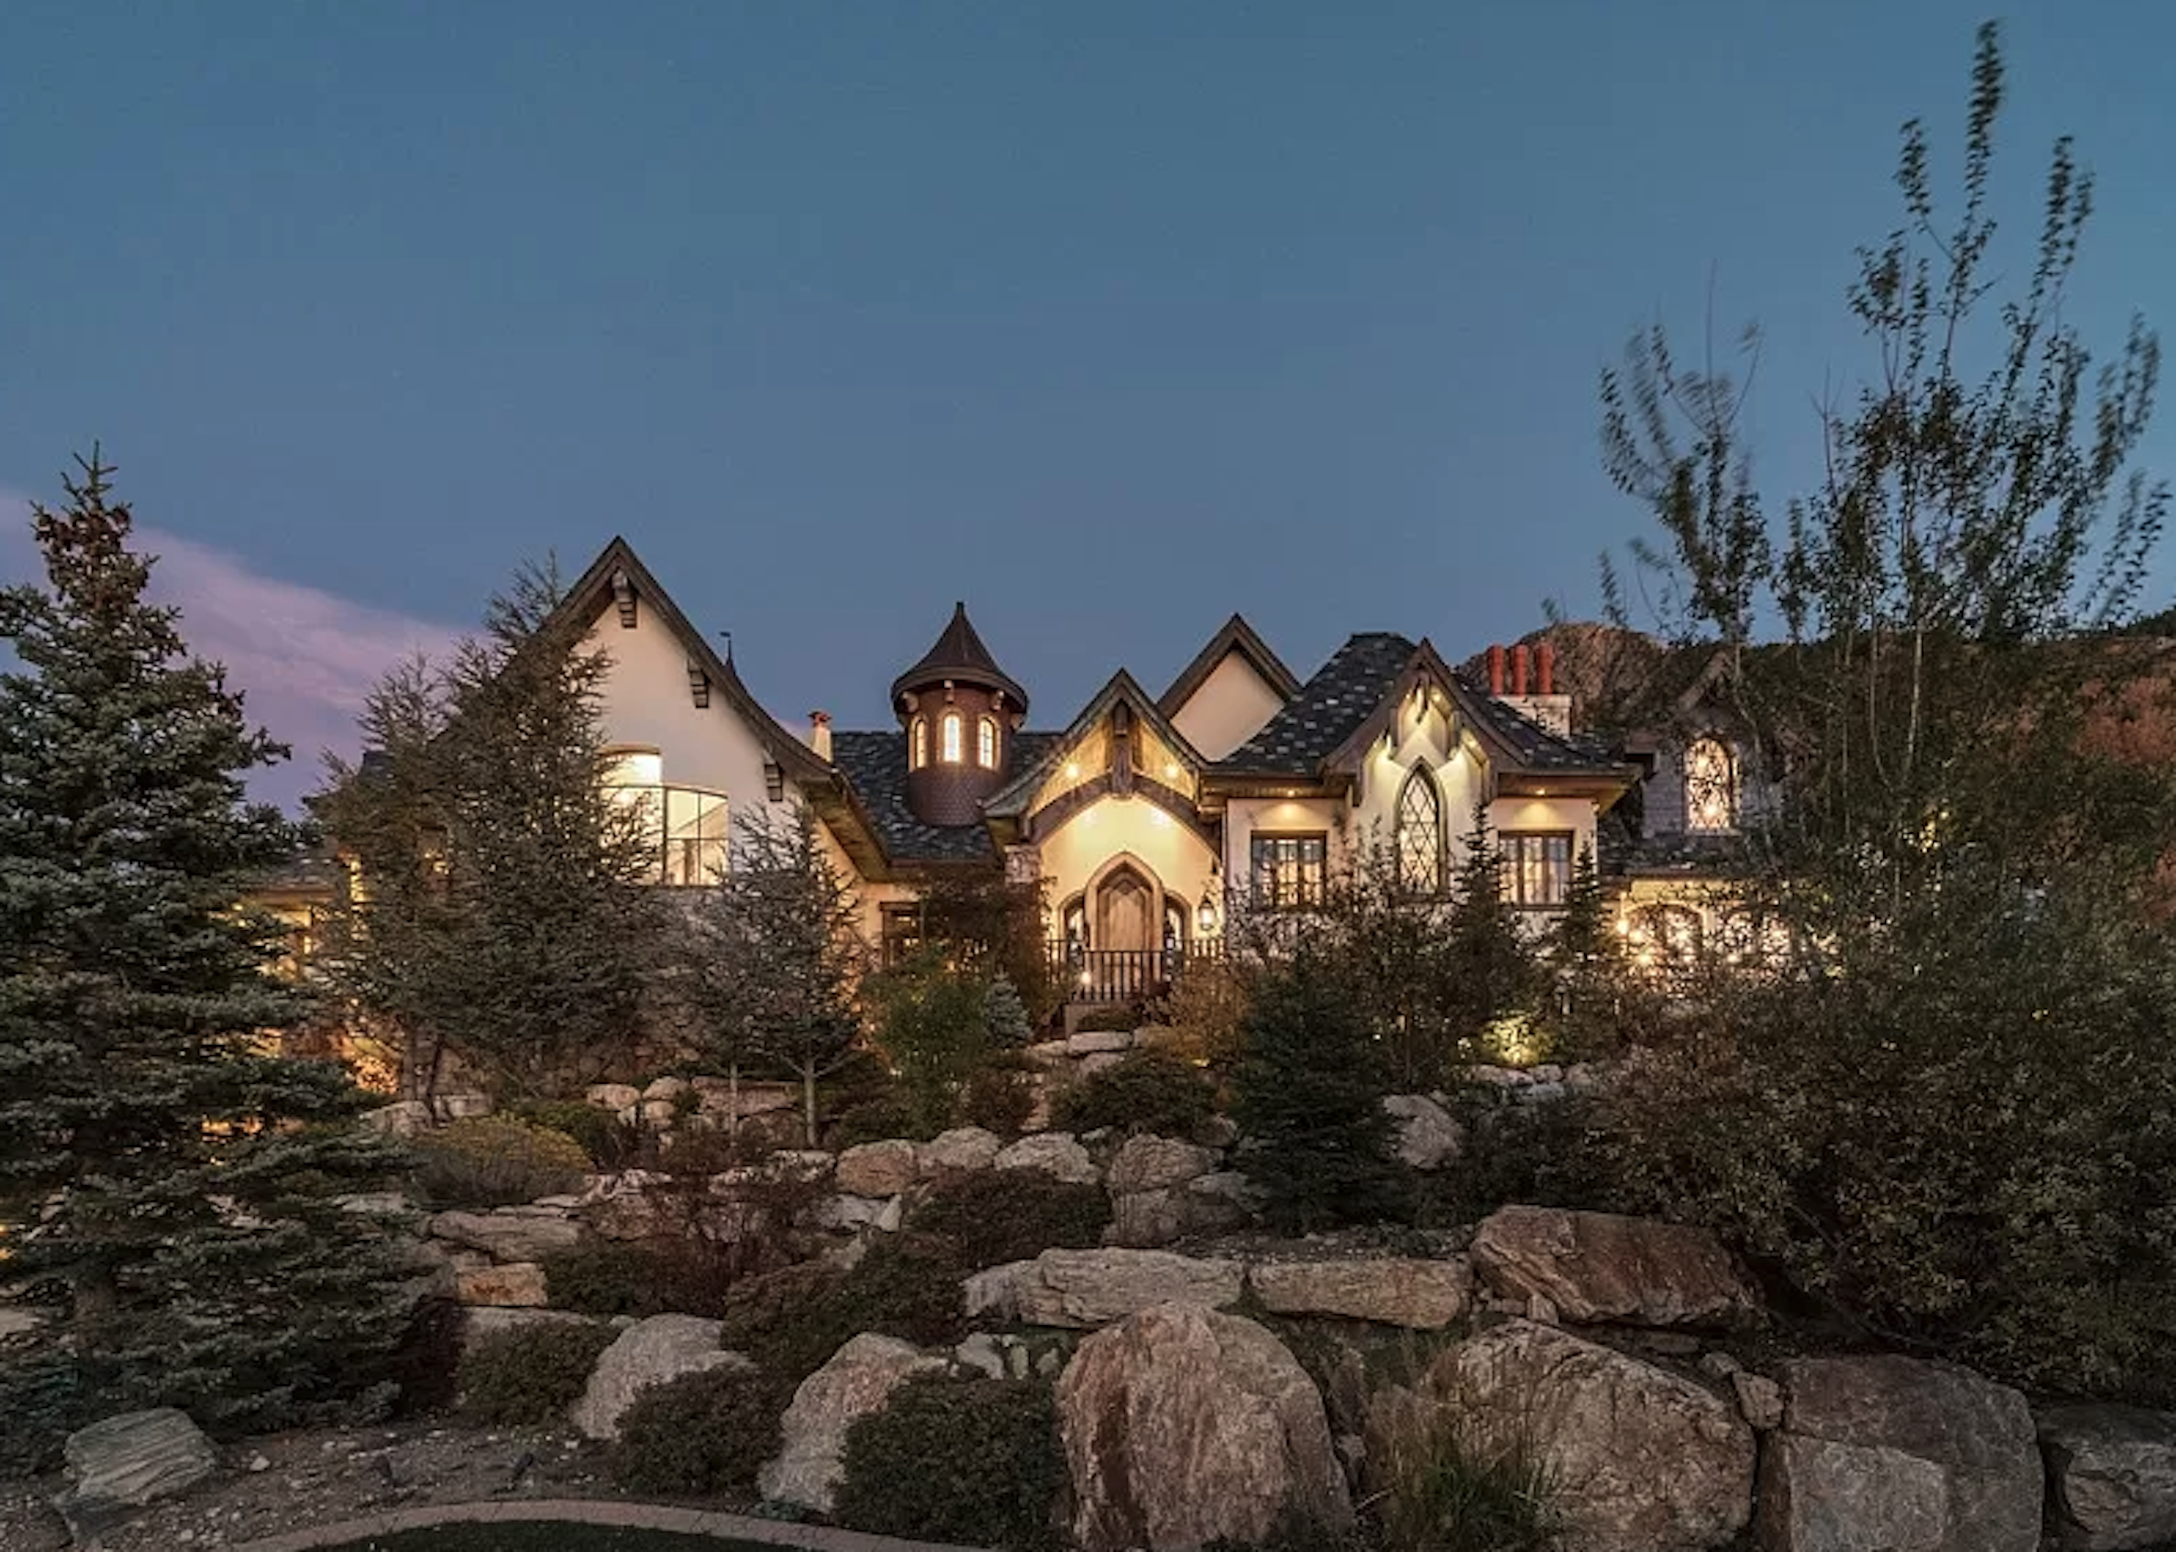 20 Utterly Insane Homes up for Sale Spotted on 'Zillow Gone Wild'